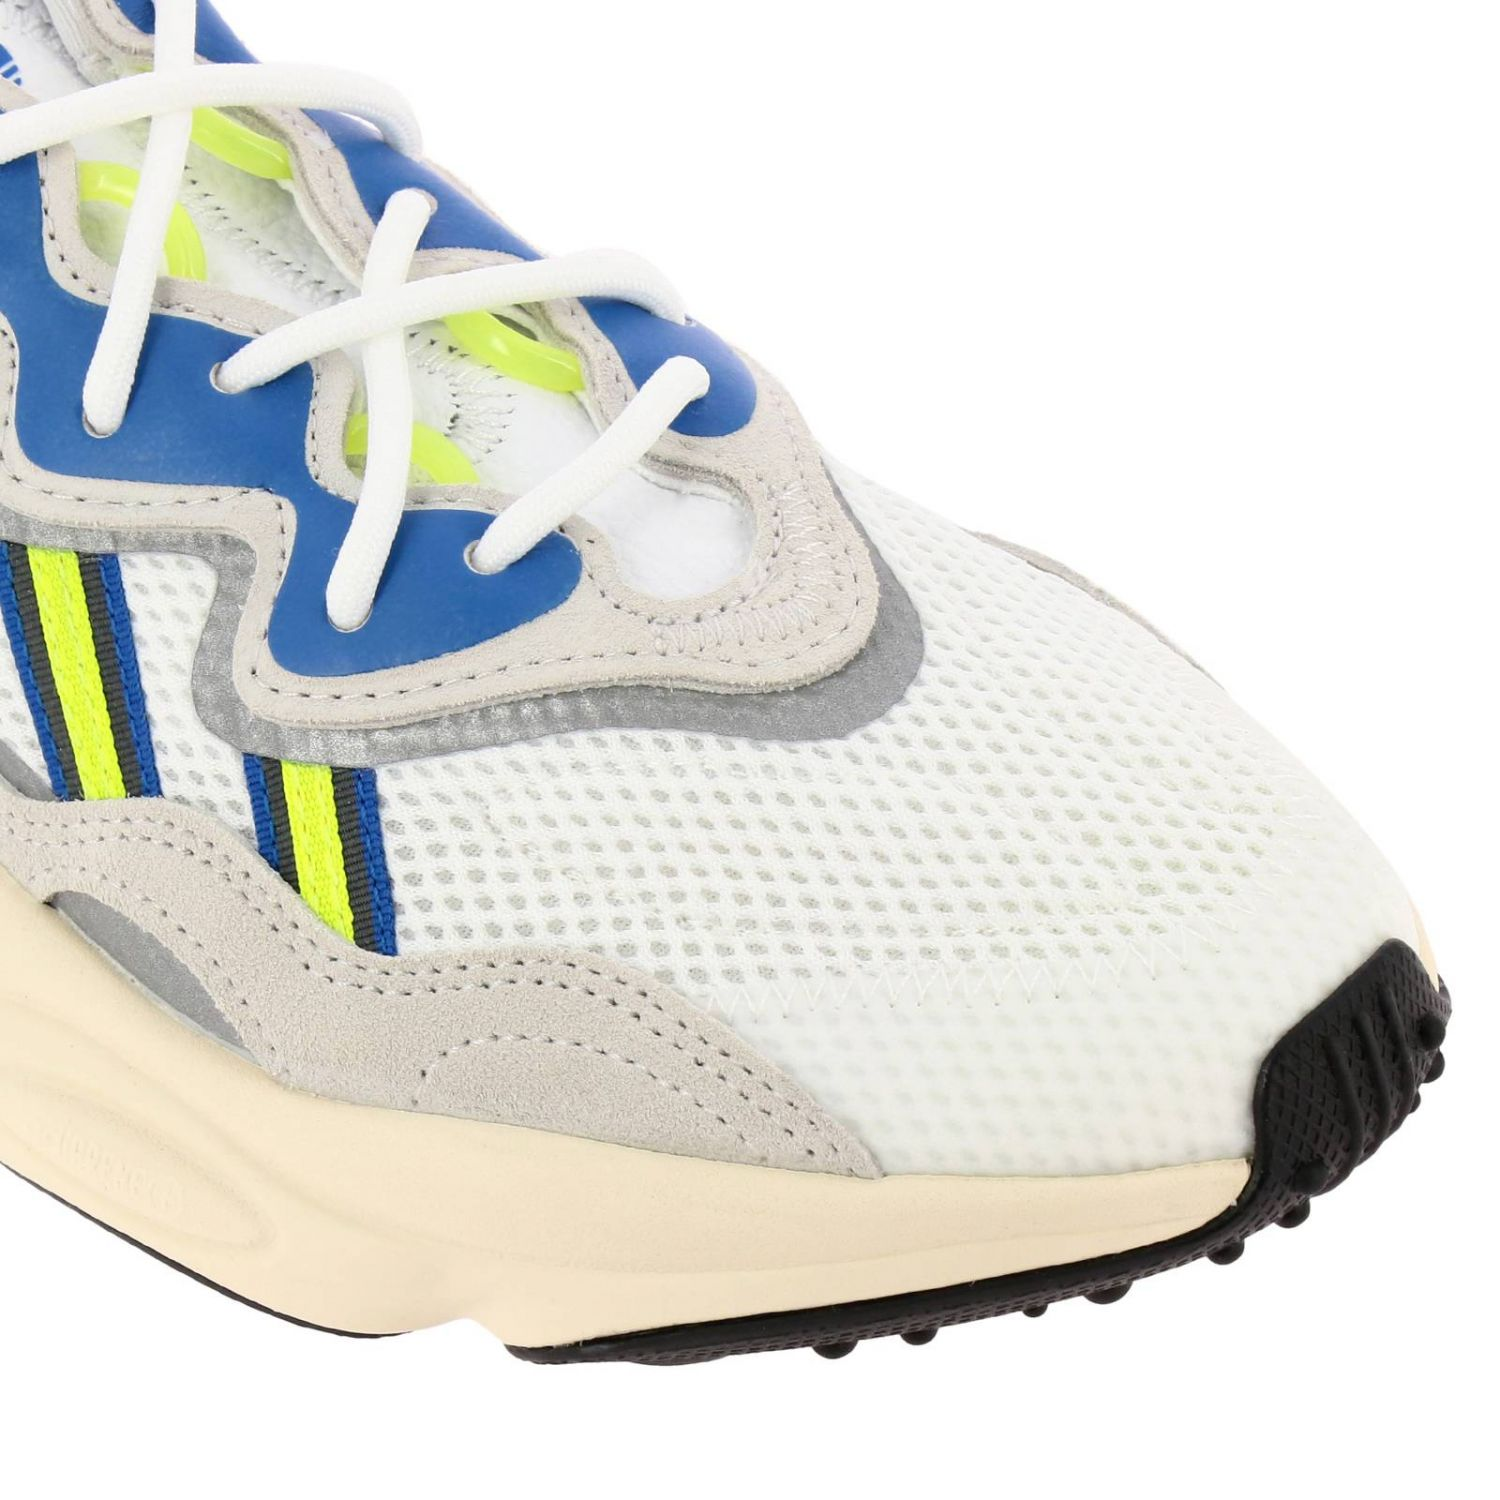 Trainers Adidas Originals: Sneakers Ozweego Adidas Originals in suede and fluo rubber white 3